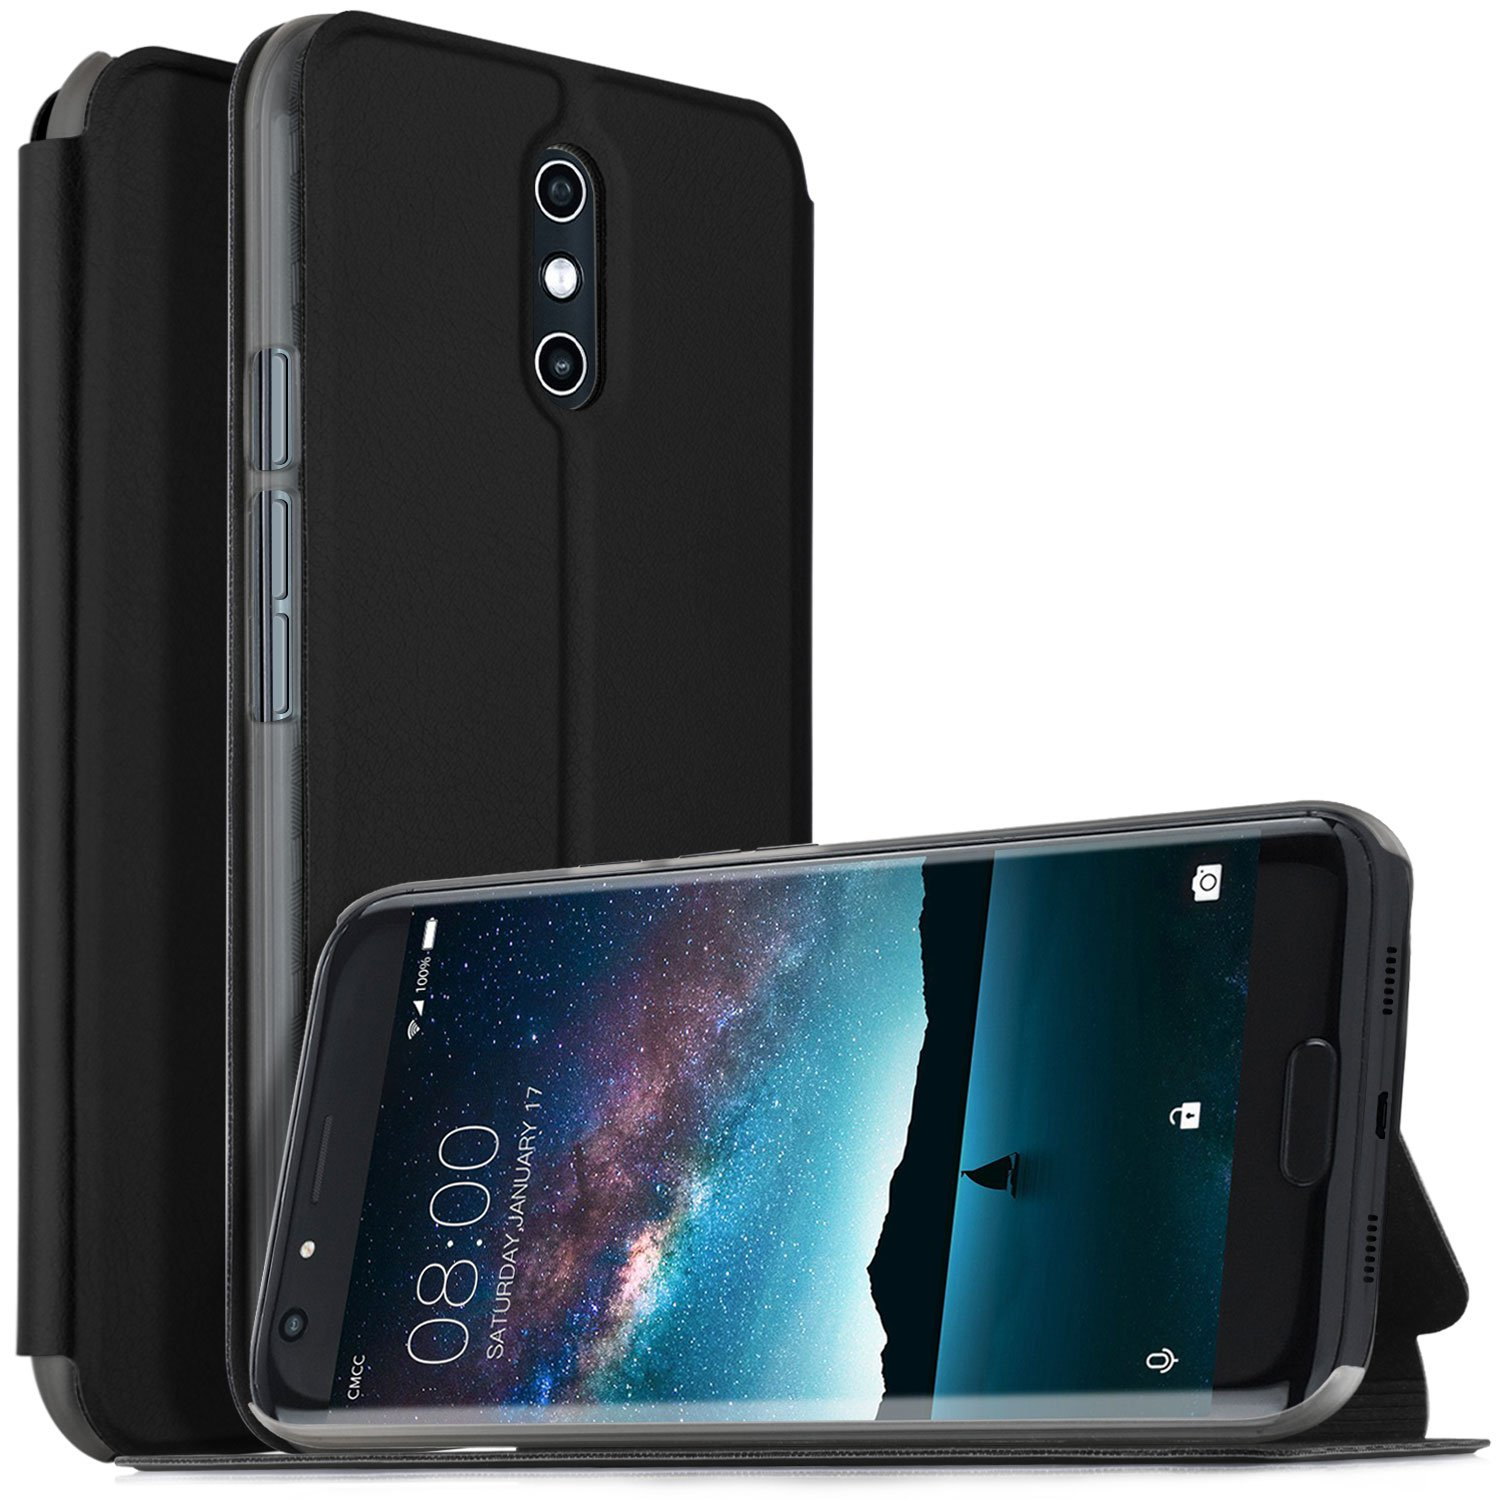 DOOGEE BL5000 - 5.5 Zoll FHD Android 7.0 4G Smartphone: Amazon.de ...